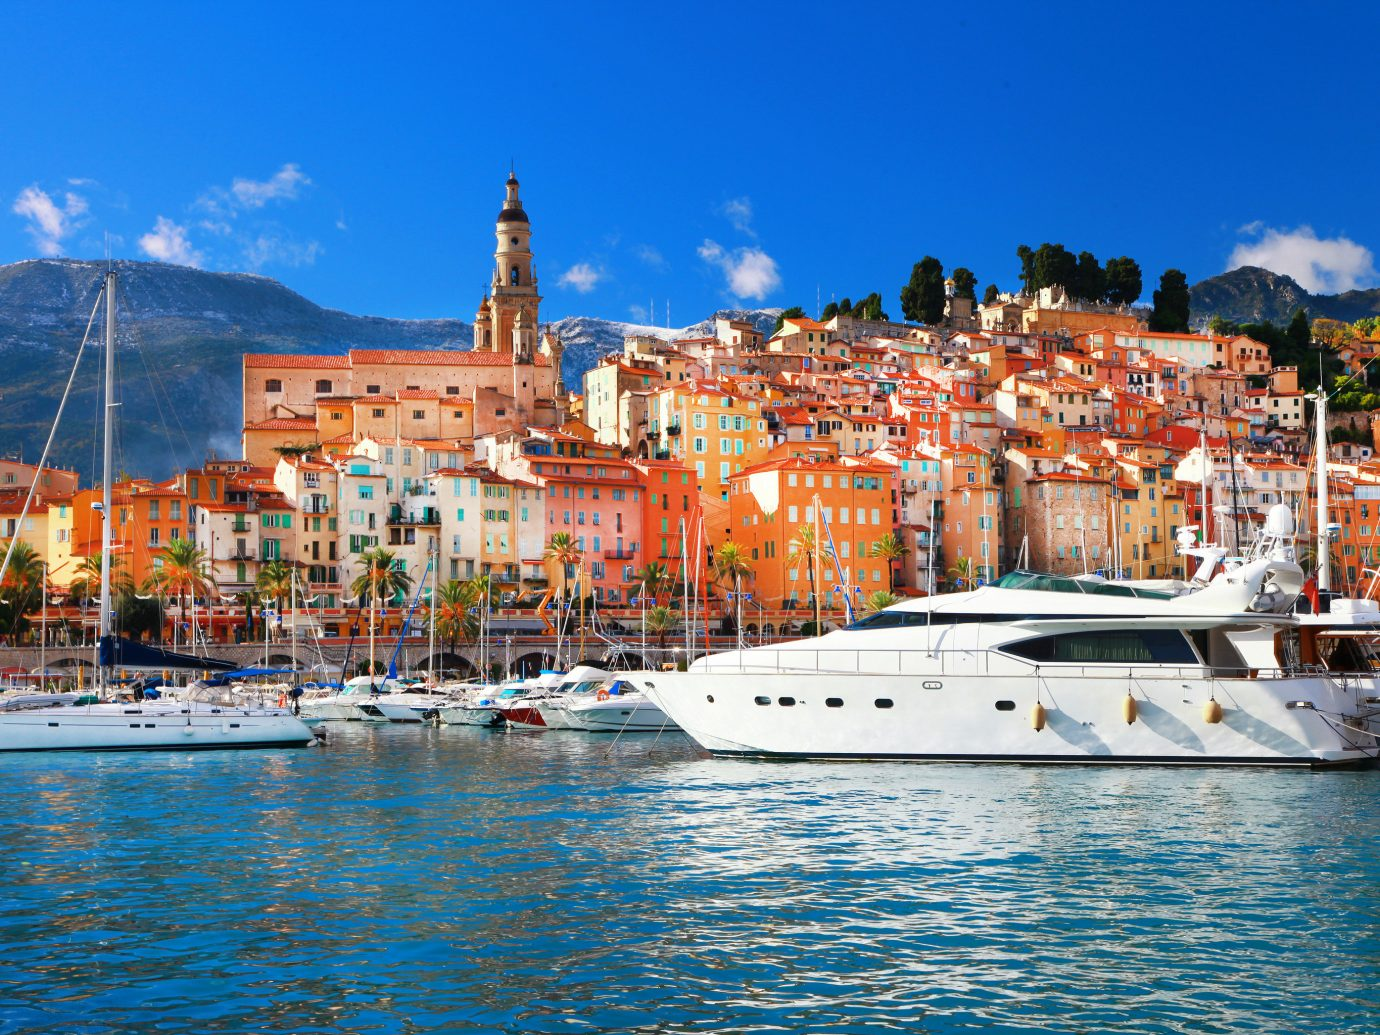 Cannes - South of France, Yacht